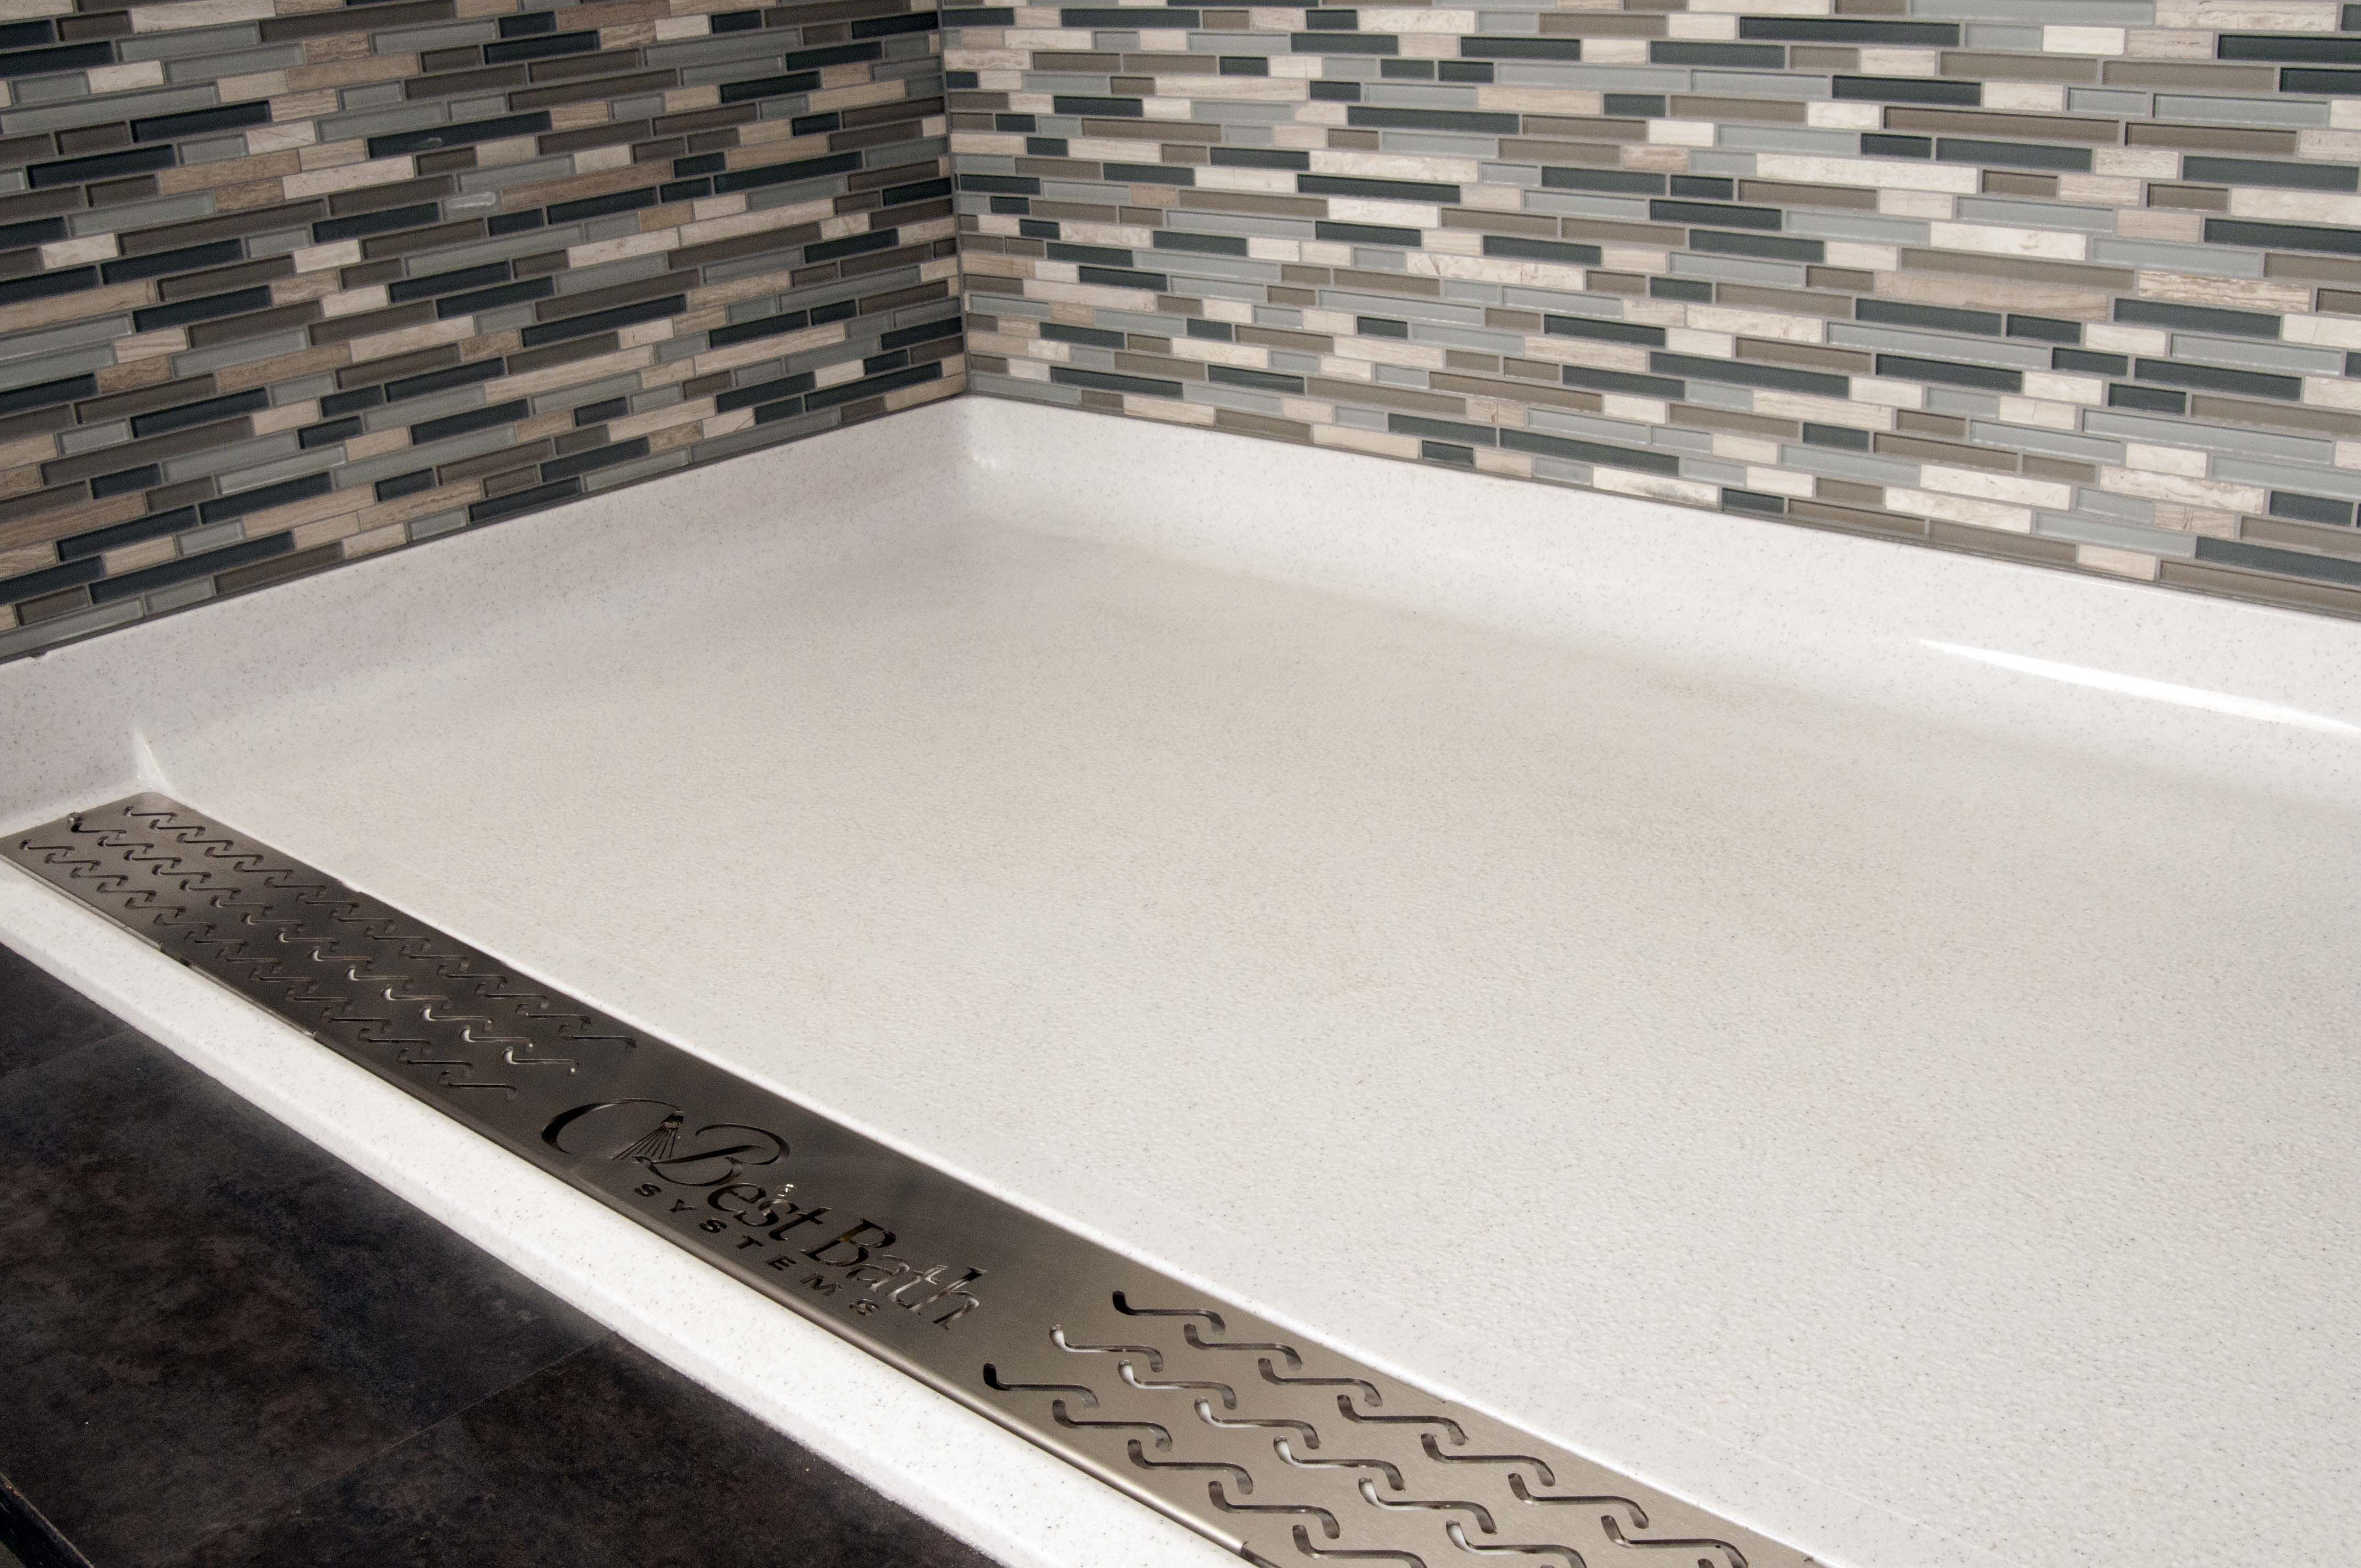 Best Bath Shower Pan With Trench Drain And Tile Walls. Have The Gorgeous  Tile Look